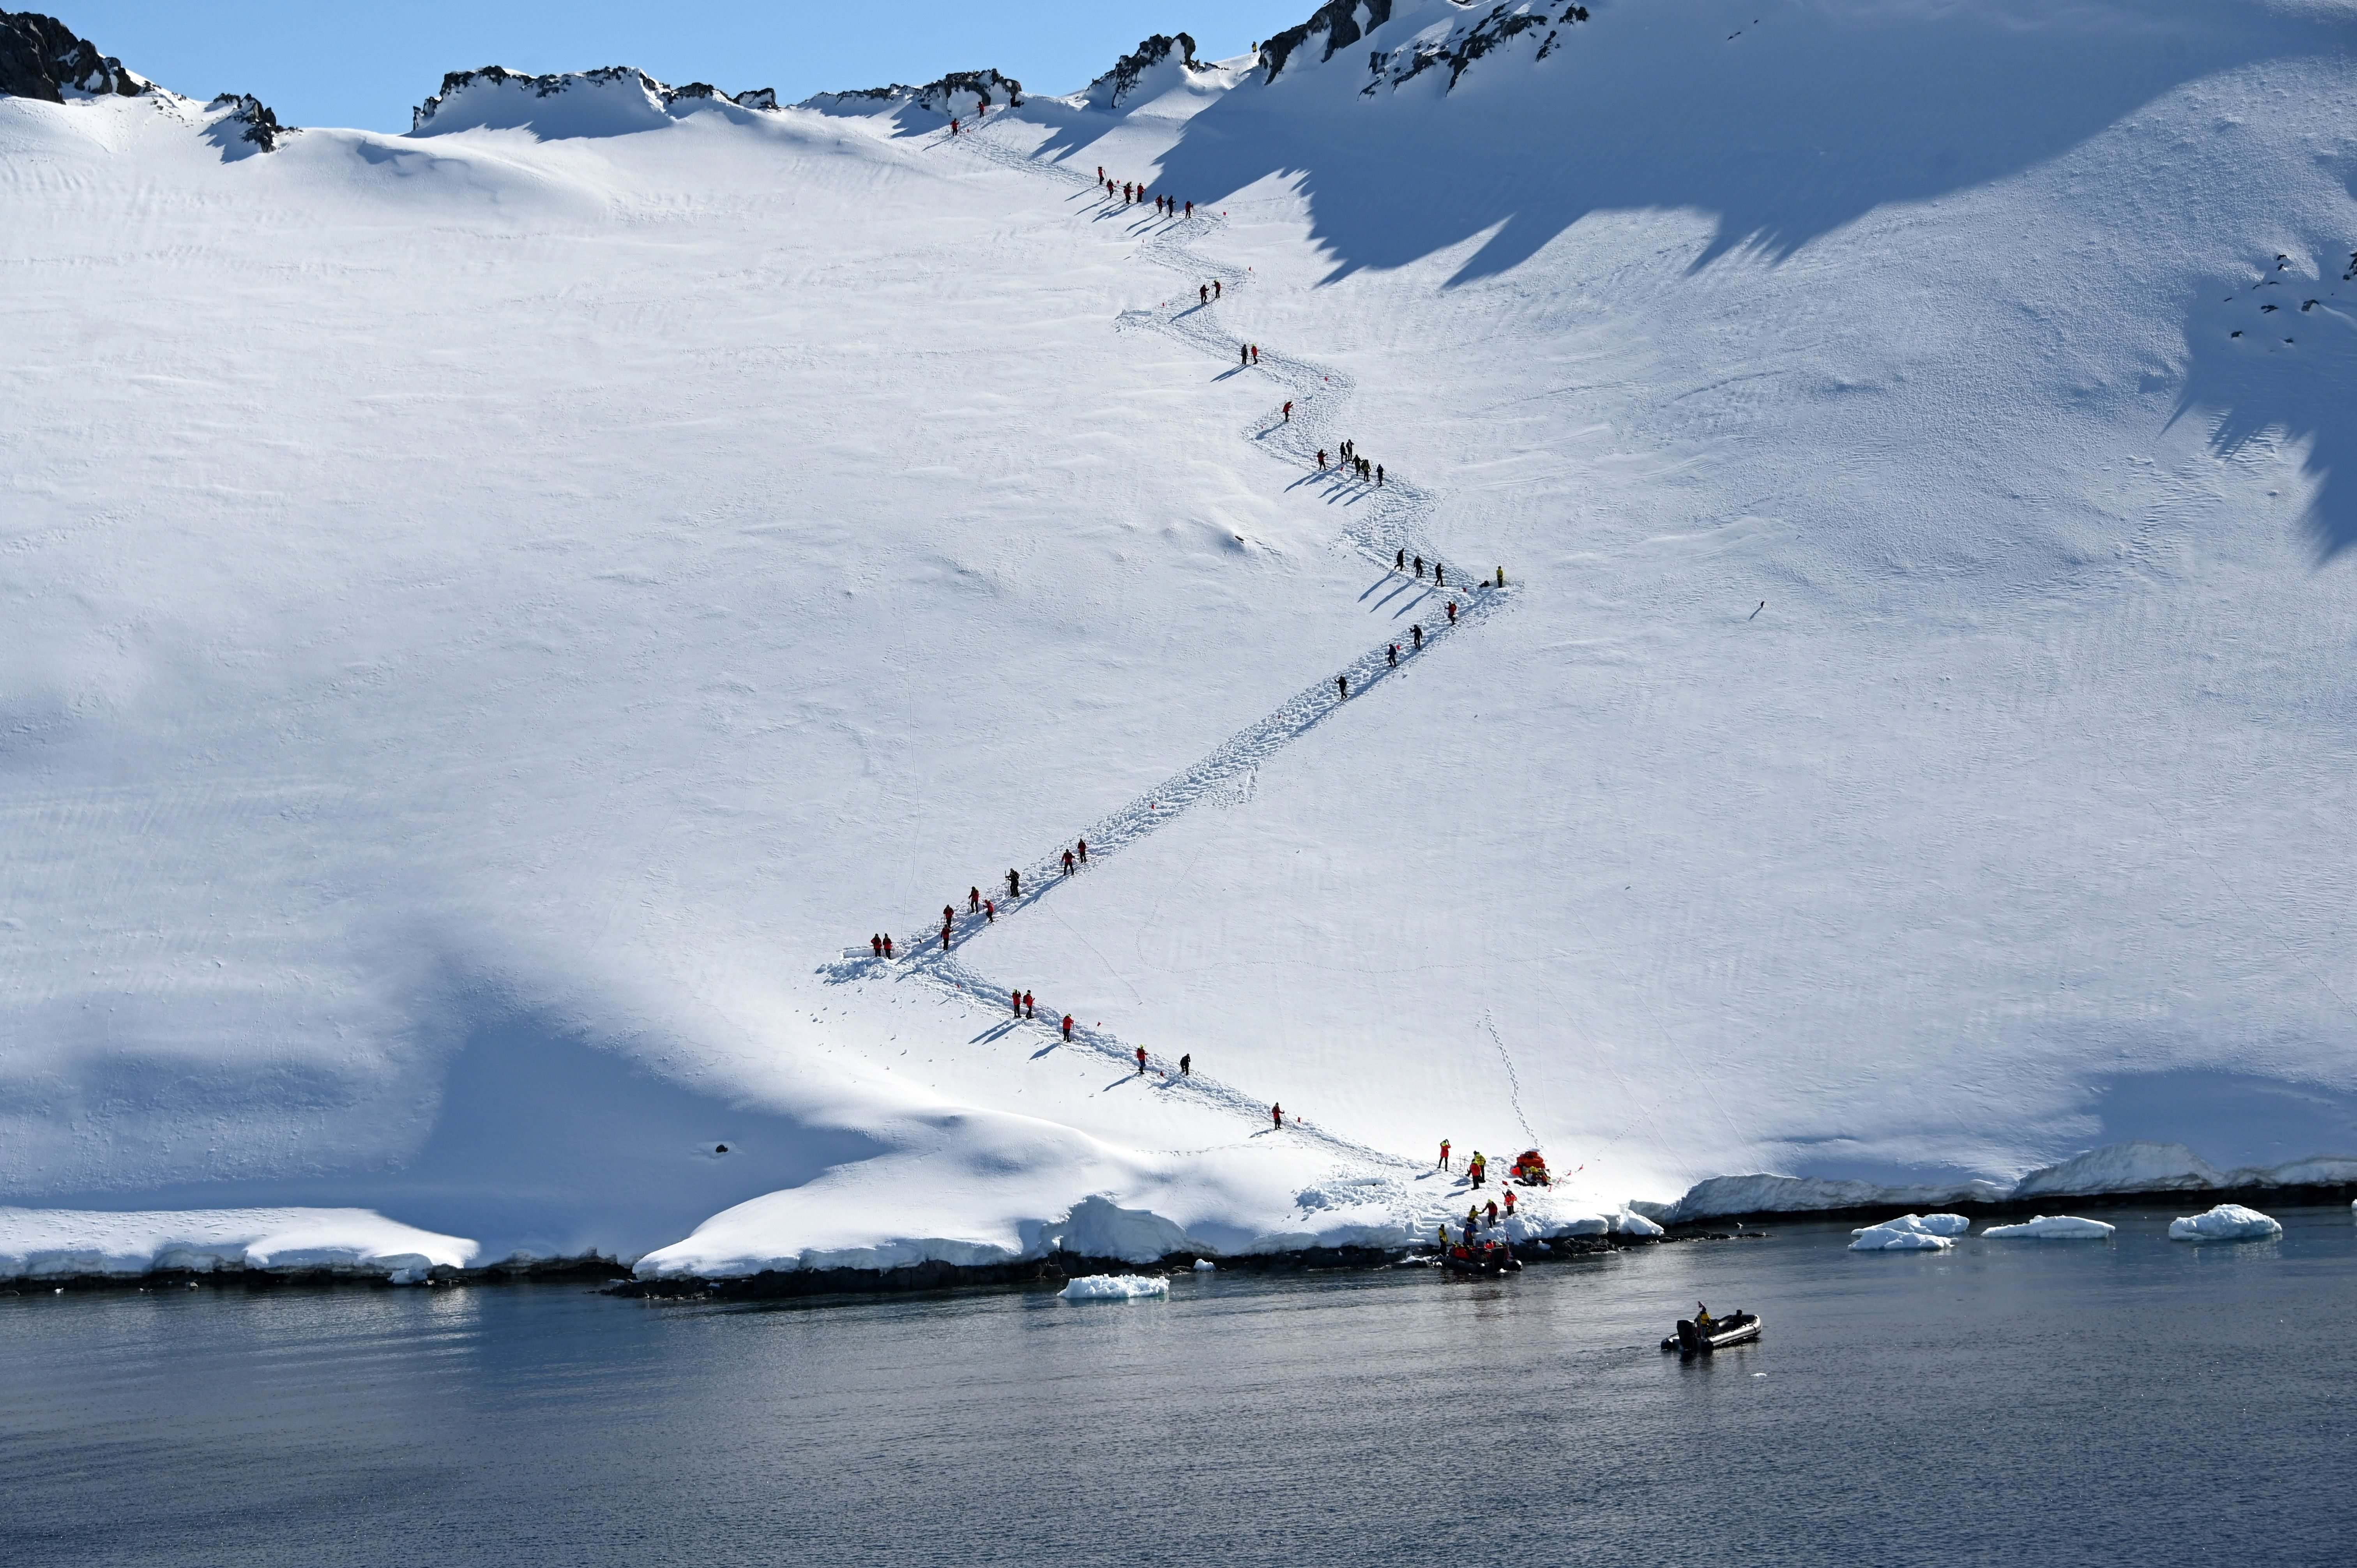 TOPSHOT-UN-CLIMATE-TOURISM-TRANSPORT-SEA-ANTARCTICA